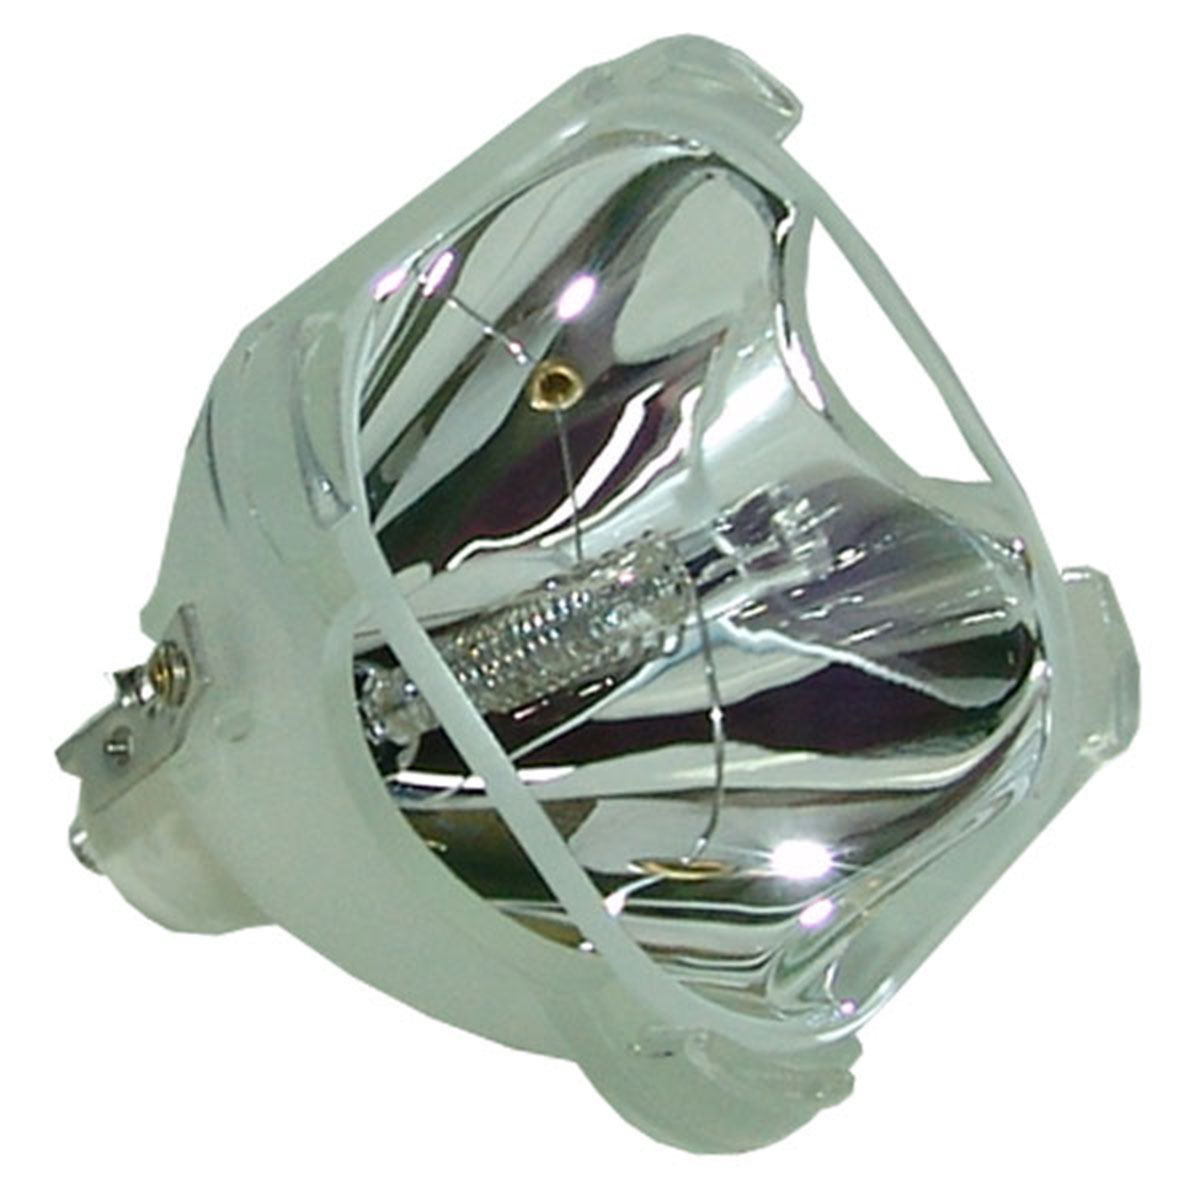 Compatible Bare Bulb ELPLP16 V13H010L16 for Epson EMP-51 EMP-71 EMP-51L Projector Lamp Bulb without housing osram lamp housing for epson v11h369020 projector dlp lcd bulb